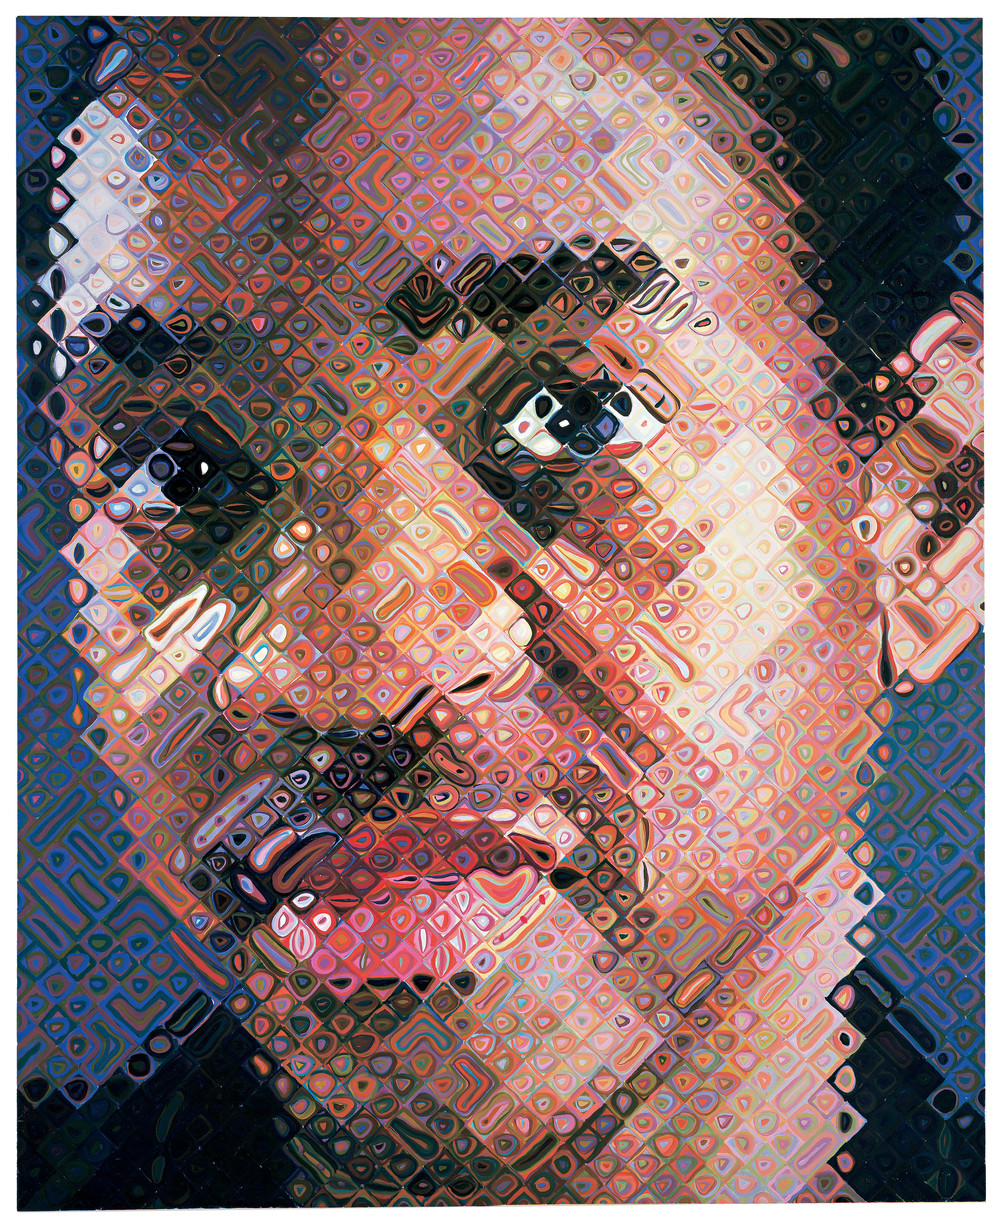 Image above: Lyle, 1999. Oil on canvas. Whitney Museum of American Art; Gift of The American Contemporary Art Foundation, Inc., Leonard A. Lauder, President. © Chuck Close, courtesy Pace Gallery